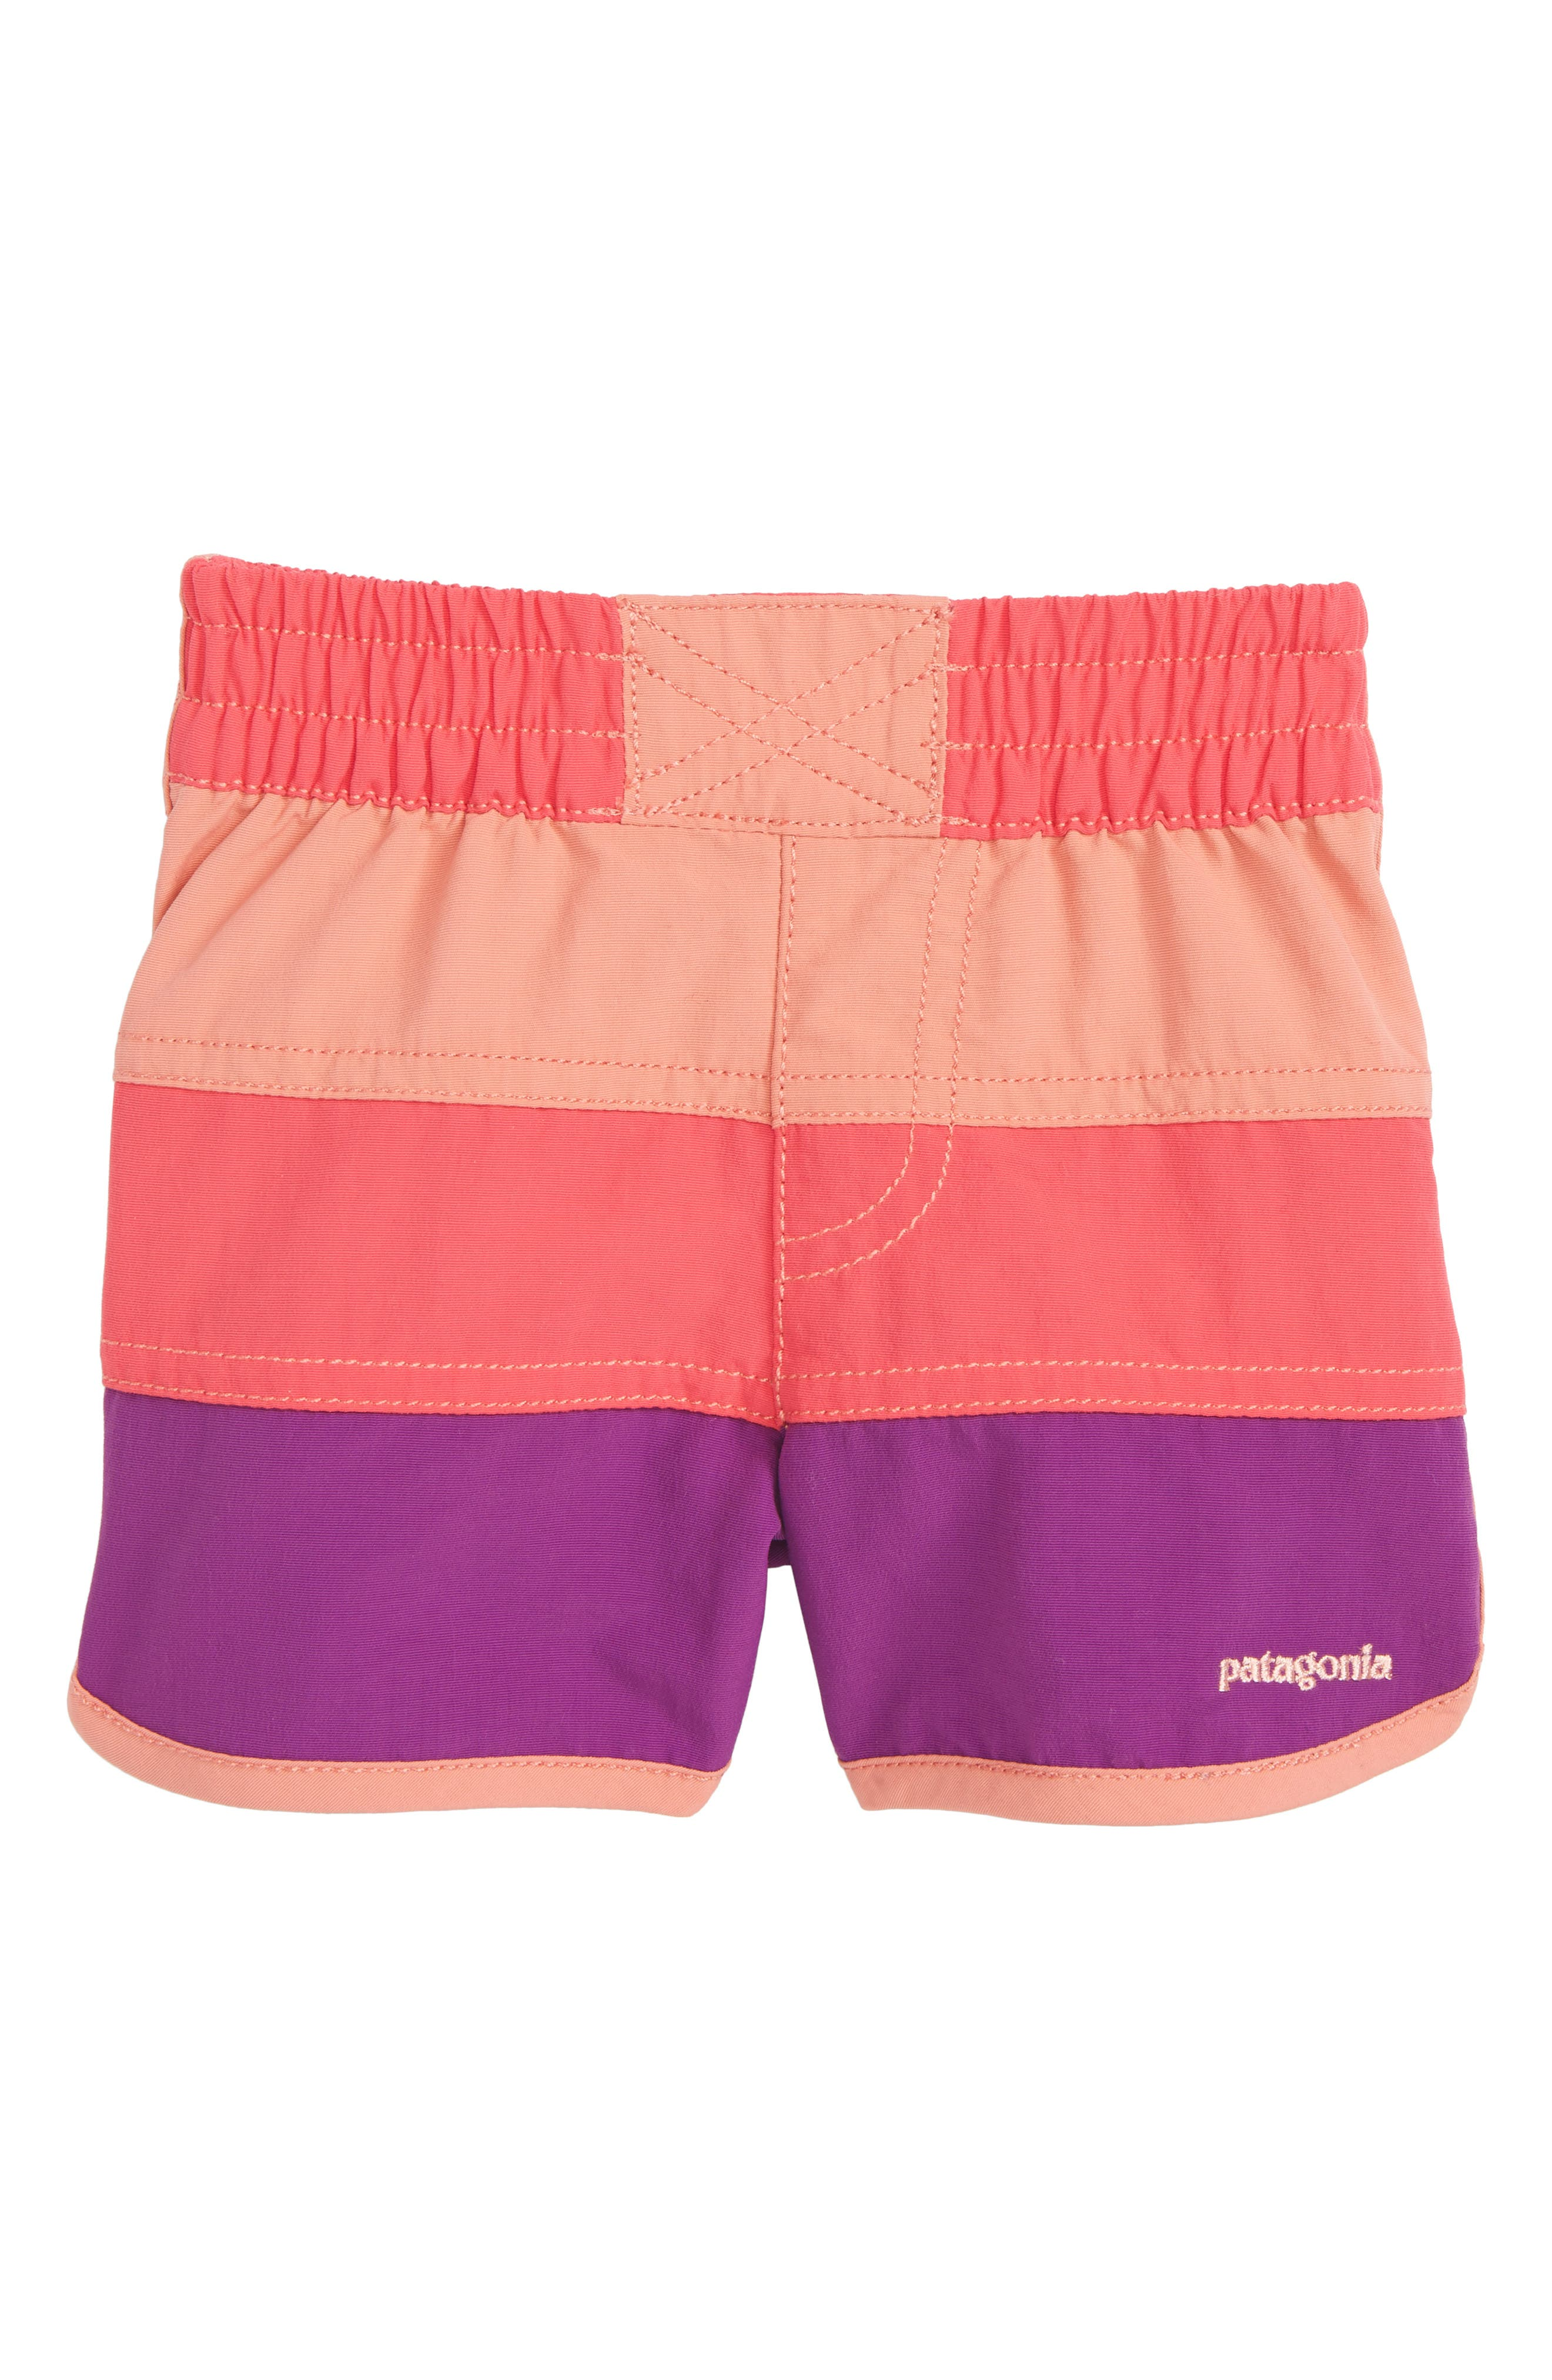 Patagonia Board Shorts (Baby Girls)